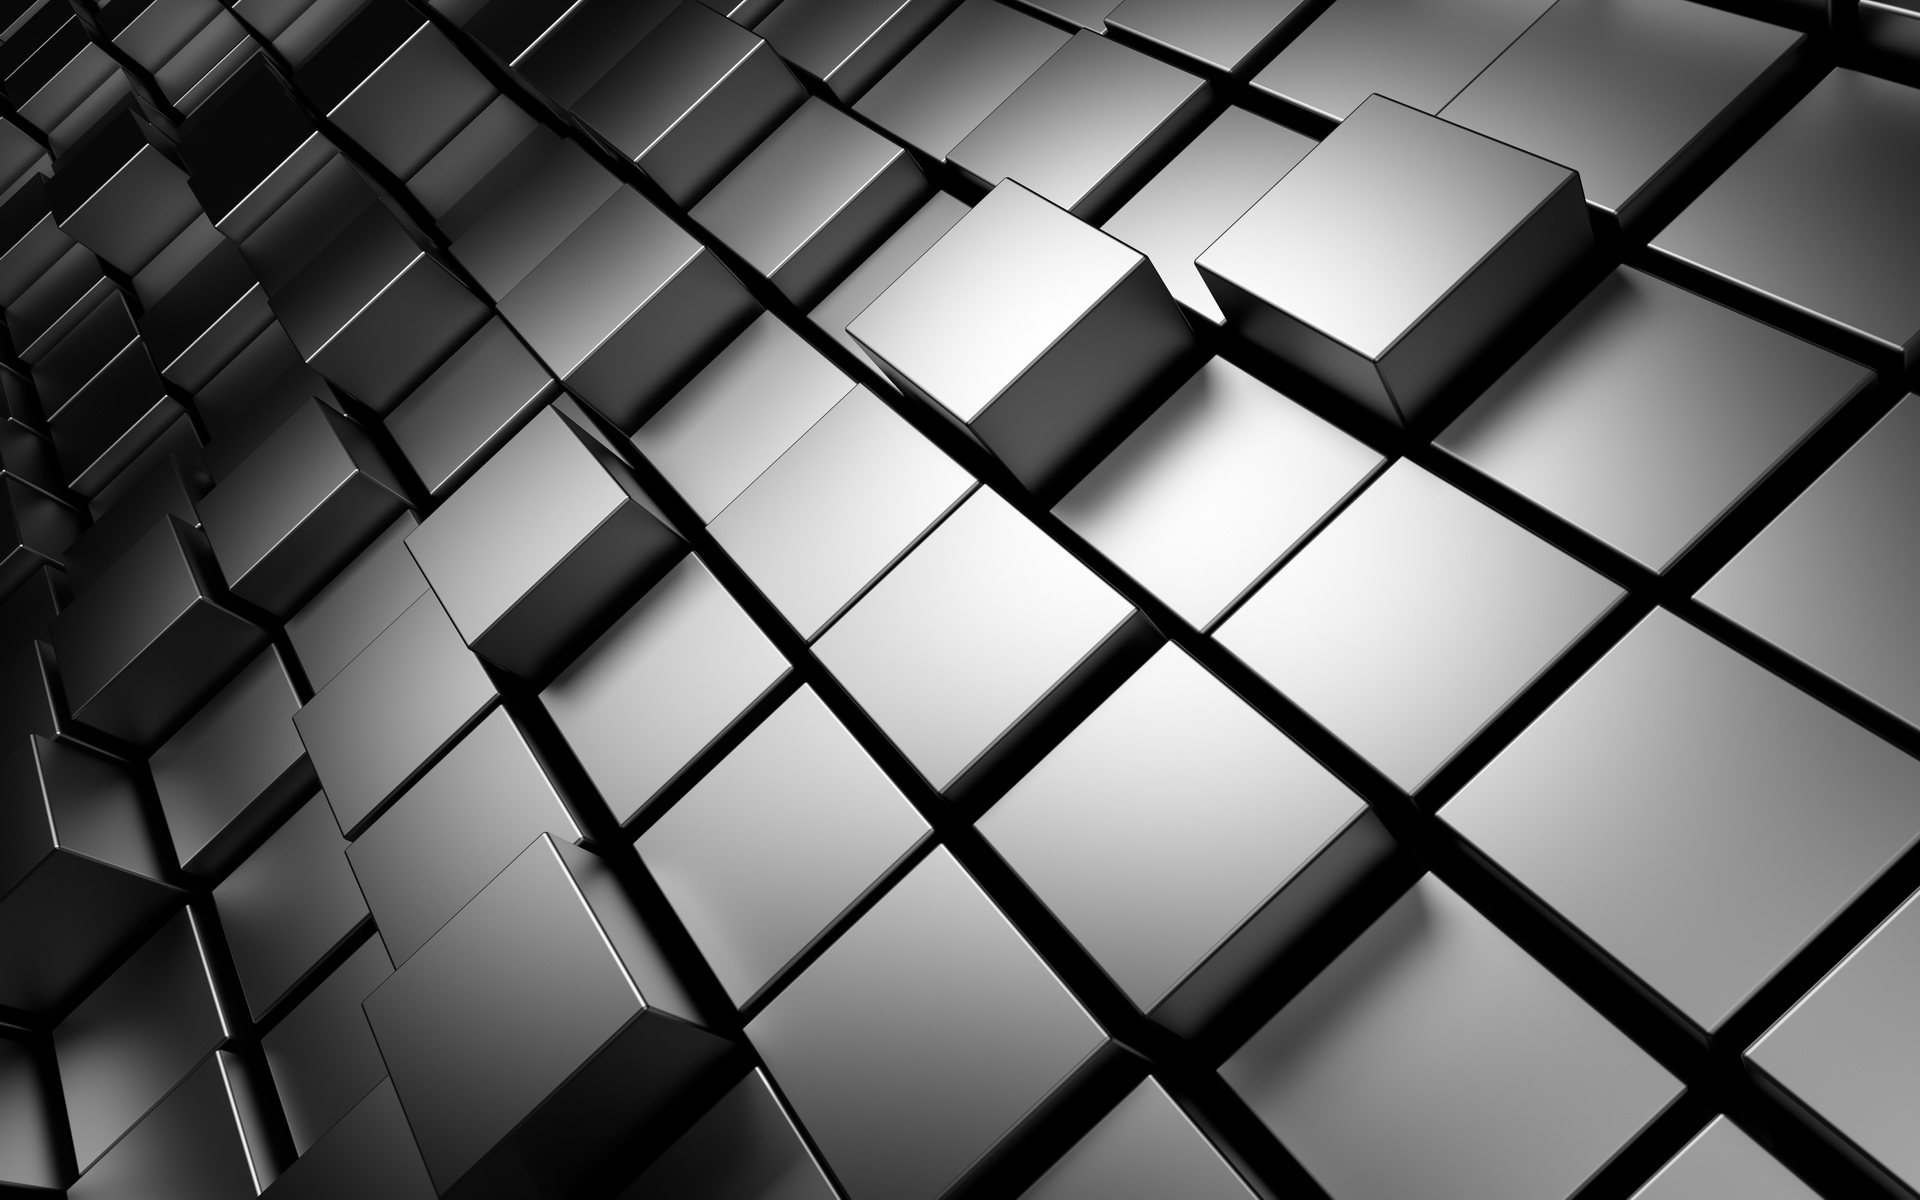 3d Cube Wallpapers: Cube Wallpapers, Pictures, Images